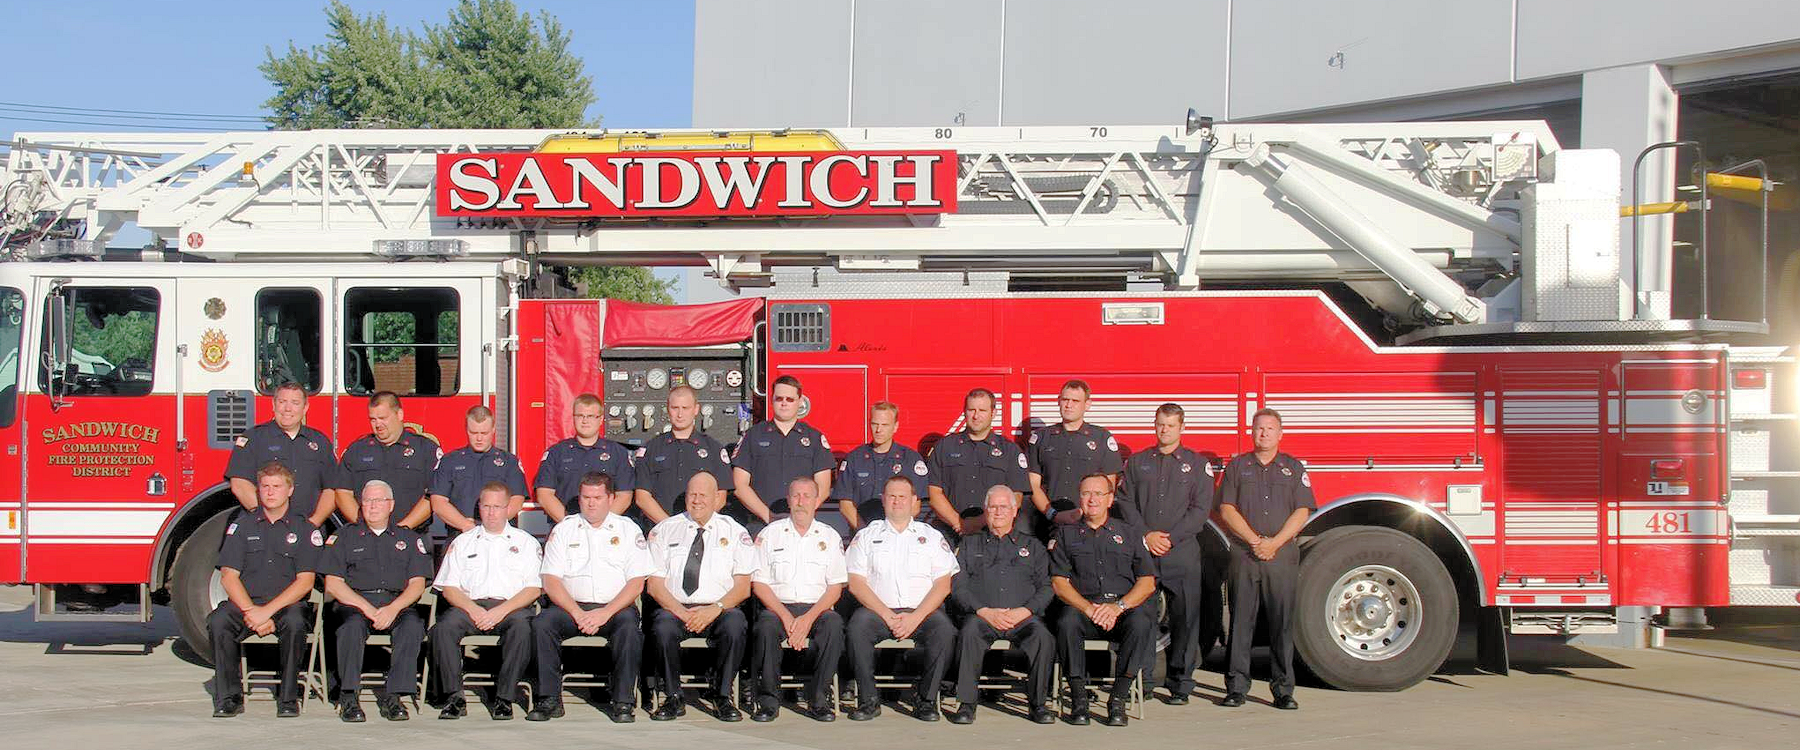 Sandwich Fire Department, Sandwich, NH